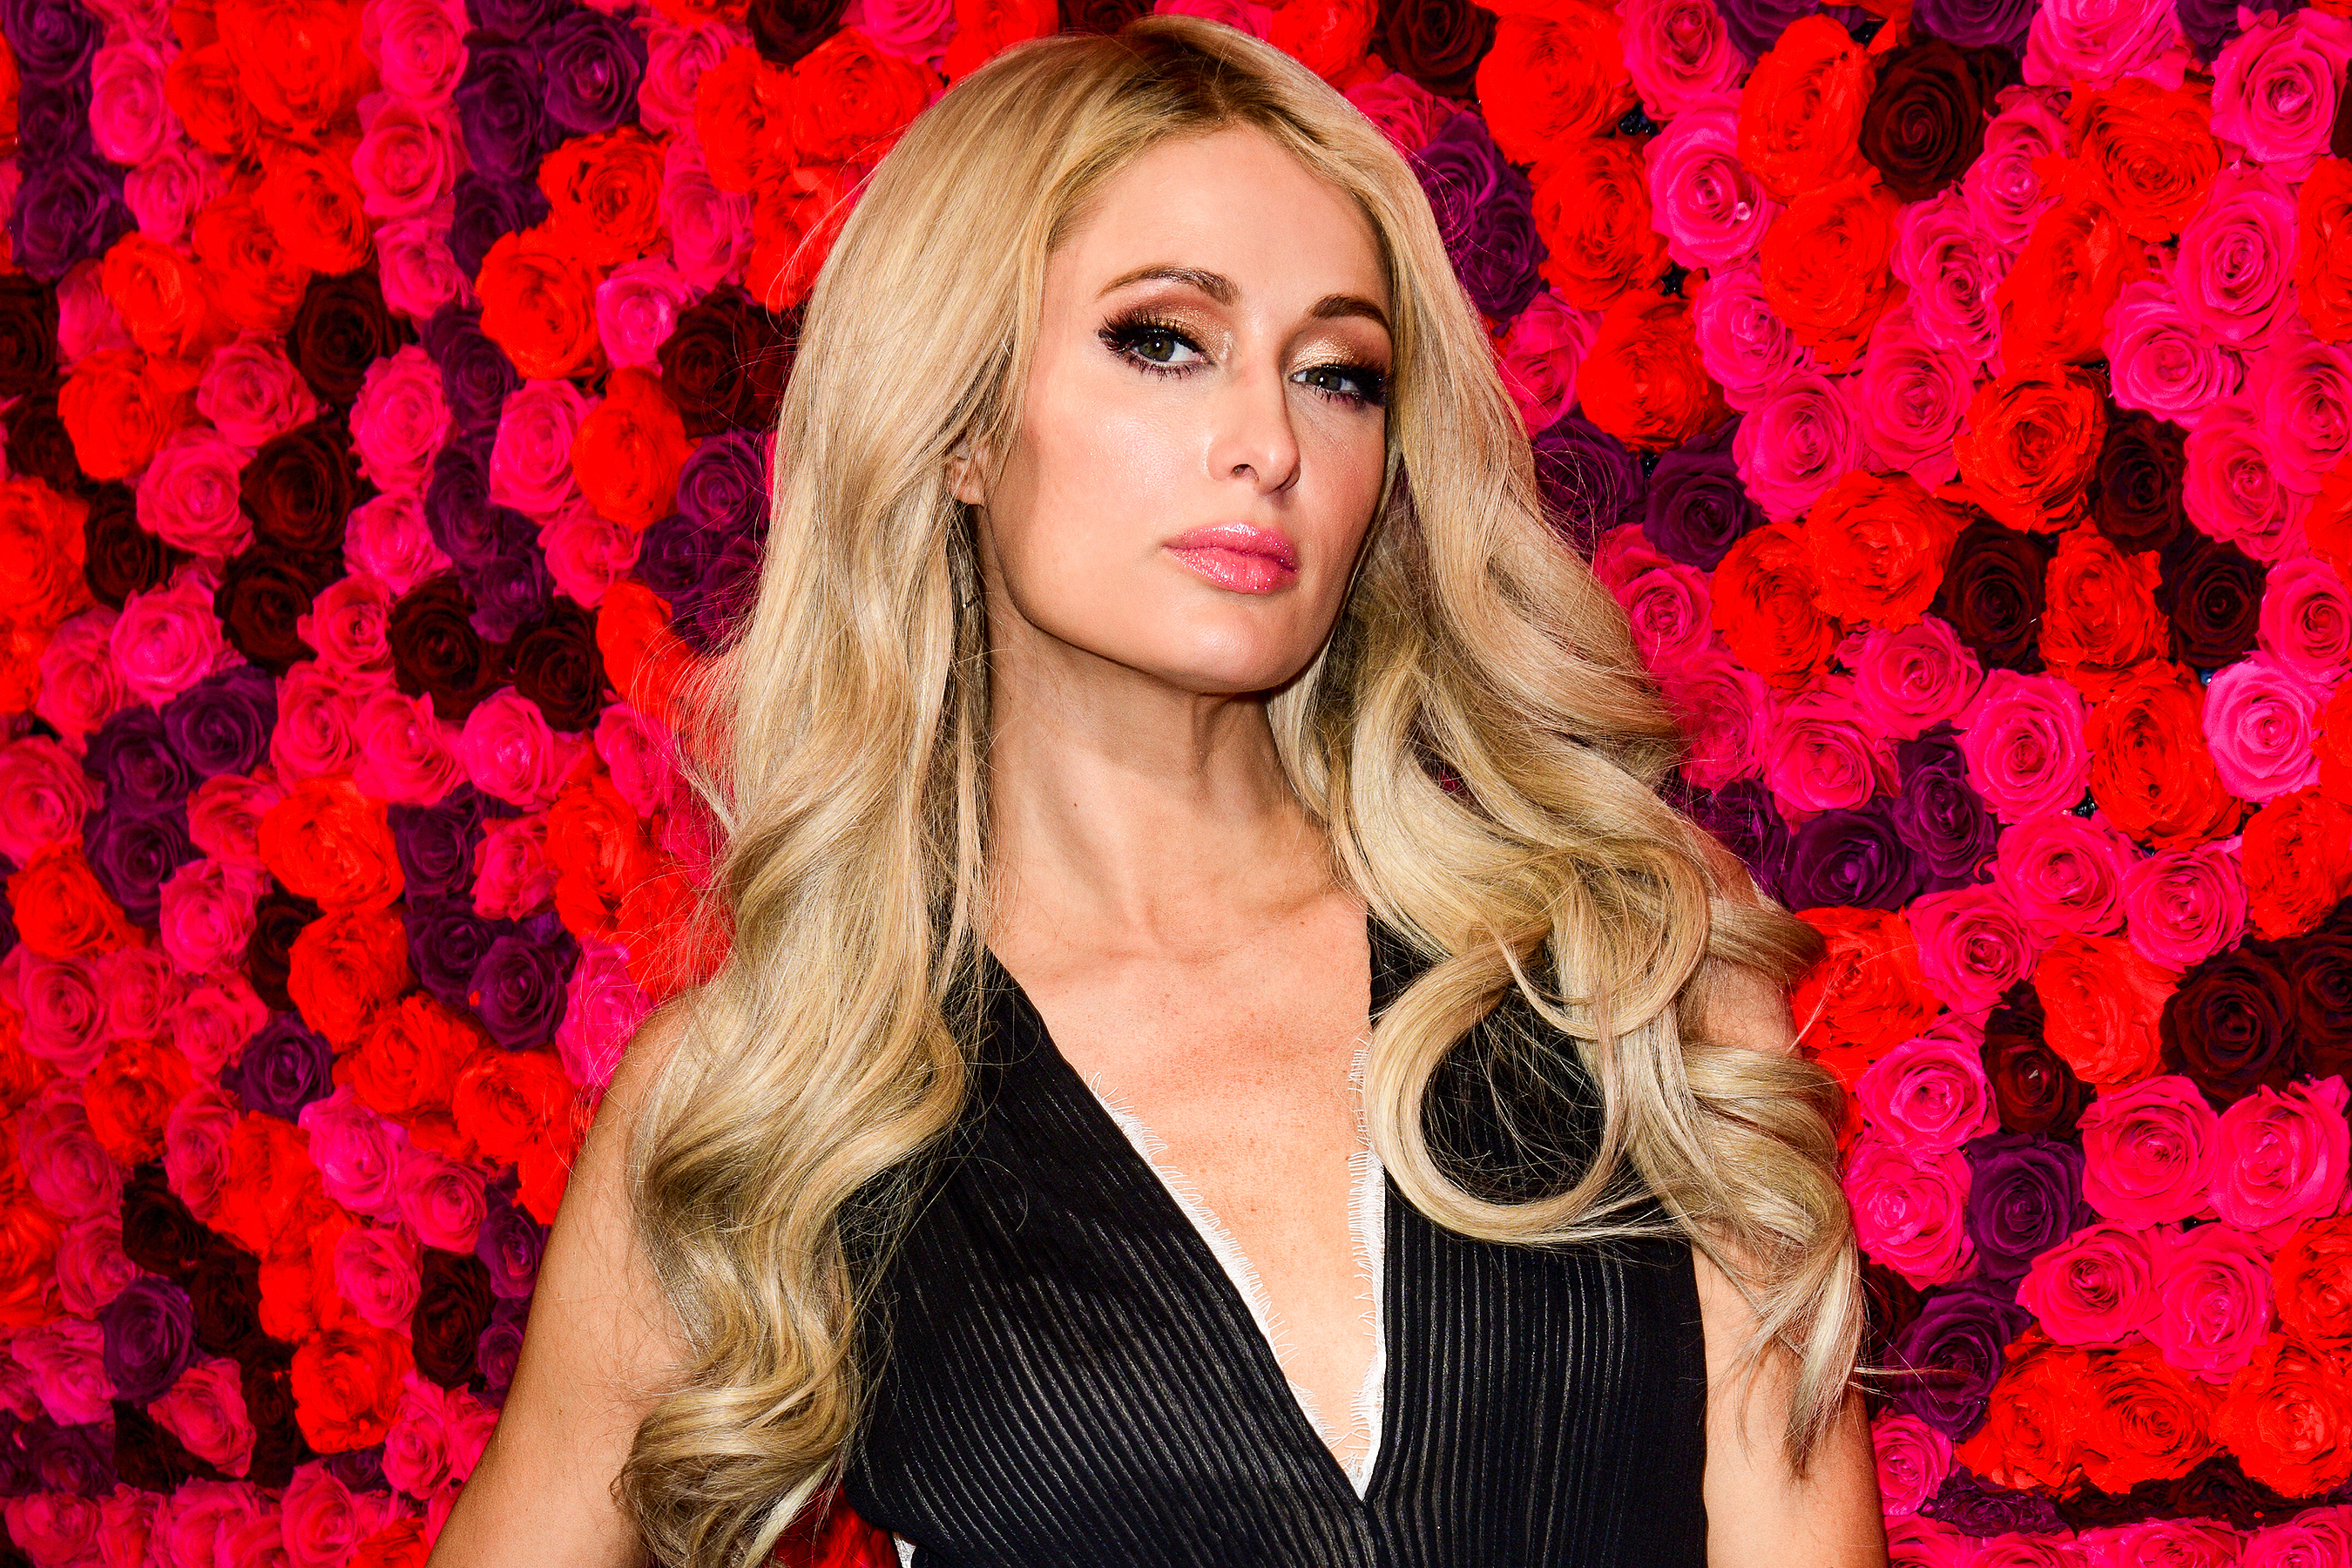 Paris Hilton Comeback Dalam Single Dimitri Vegas & Like Mike, 'B.F.A.'